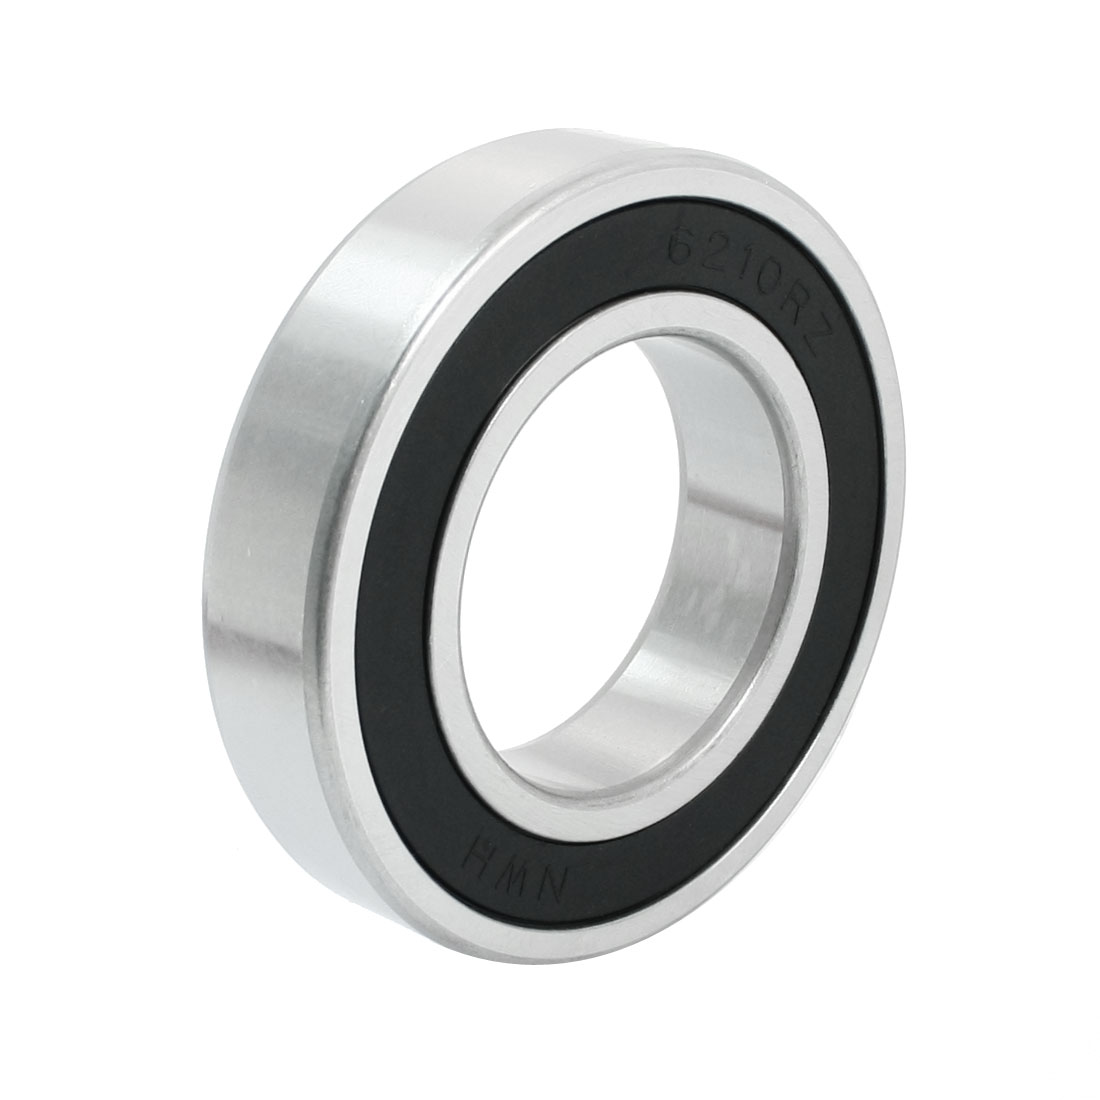 6210-2Rs Radial Ball Bearing Double Sealed Bore Dia 50Mm Od 90Mm Thick 20Mm батарею для nokia 6210